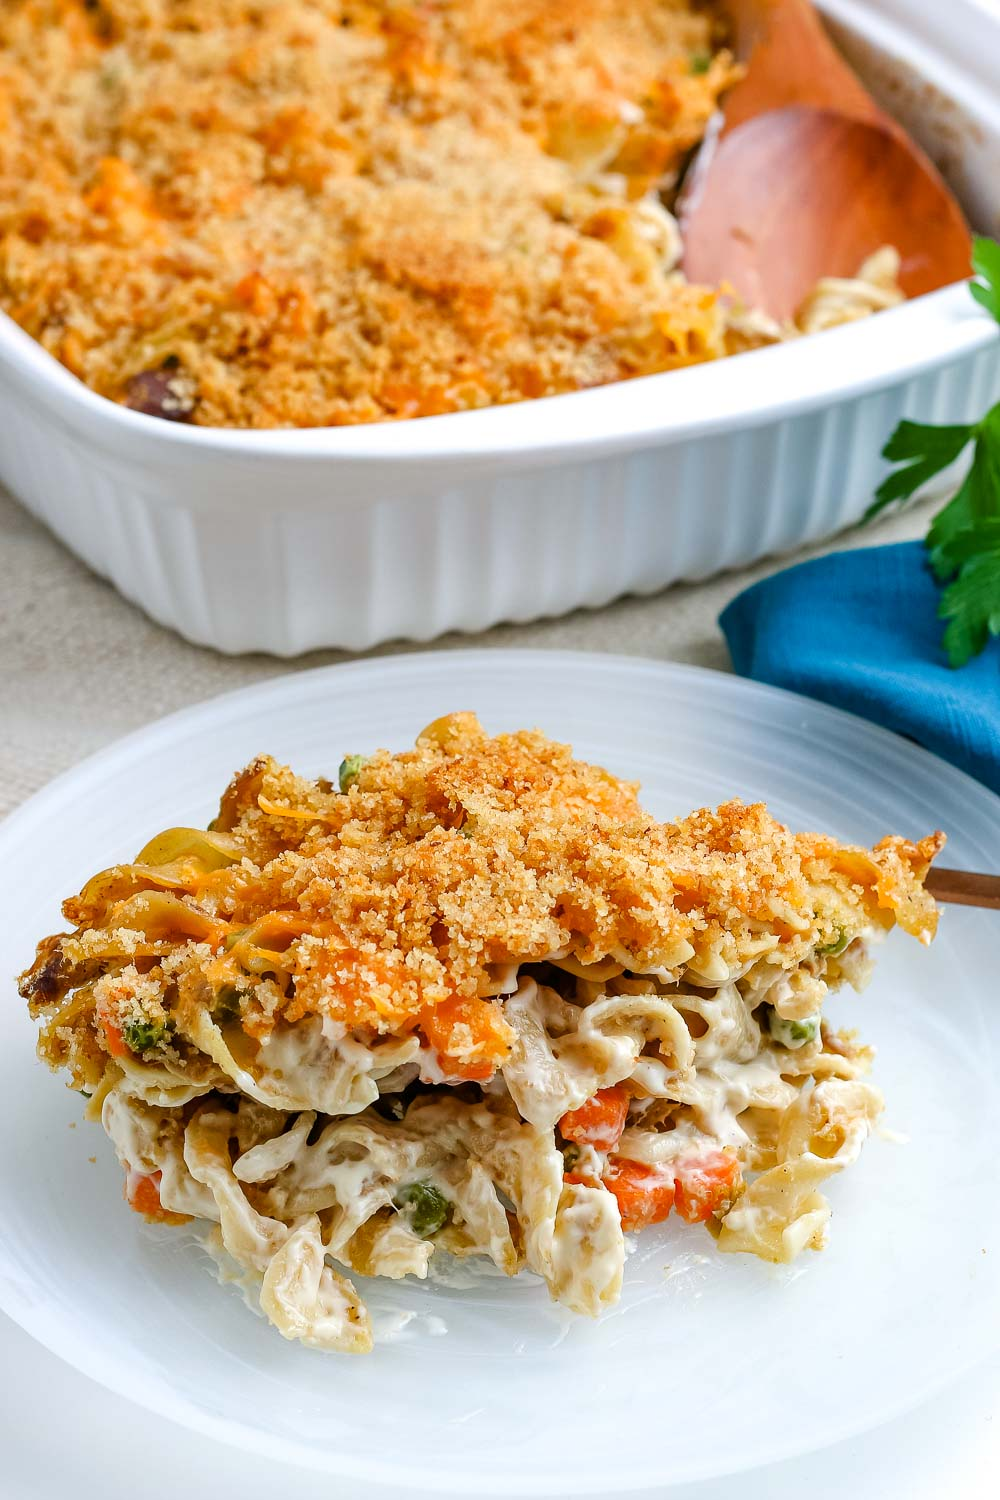 A scoop of Tuna Noodle Casserole on a white plate.